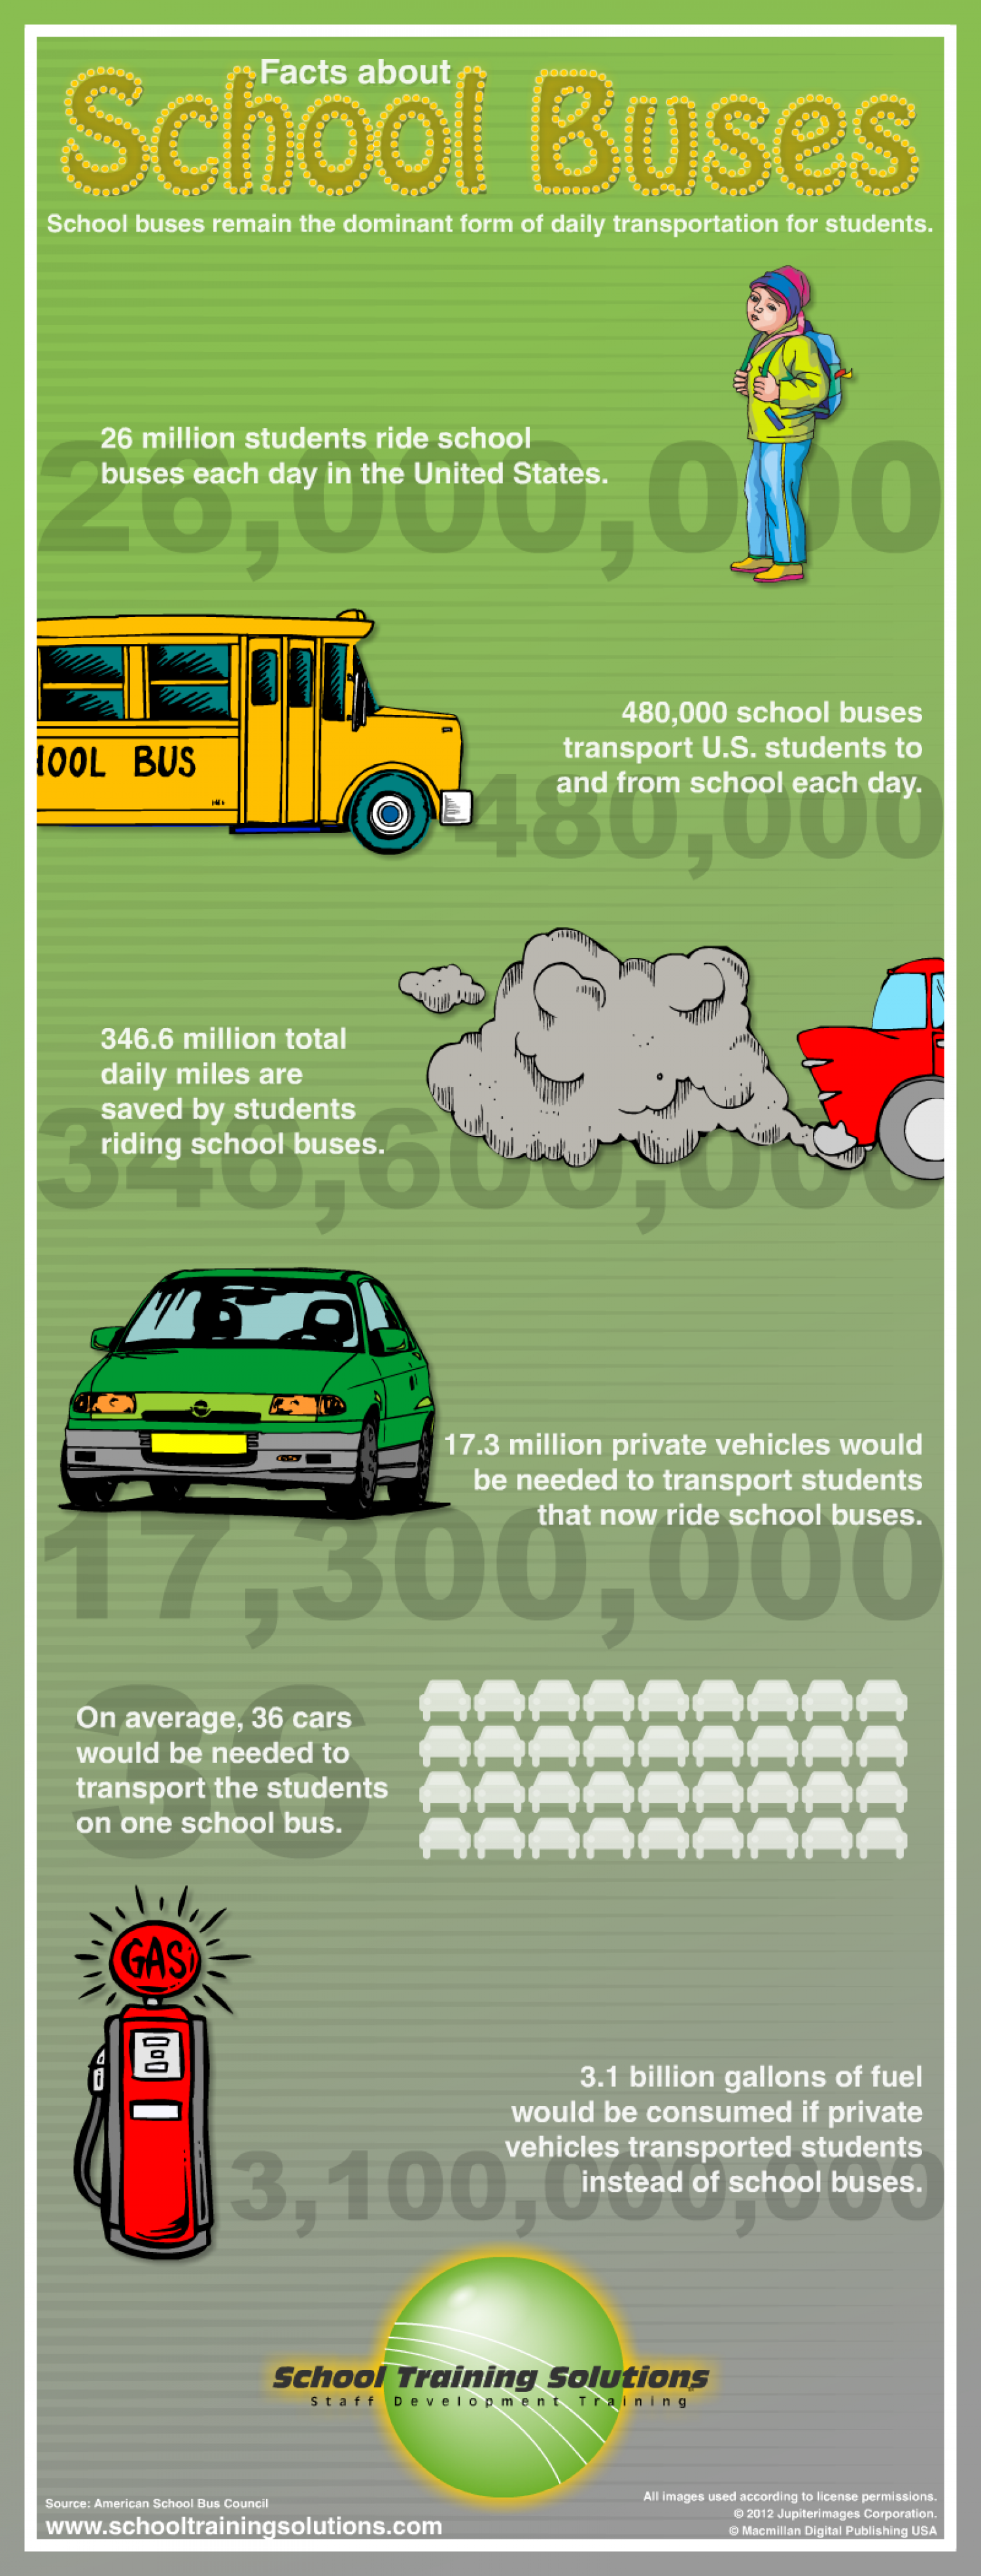 Facts About School Buses Infographic